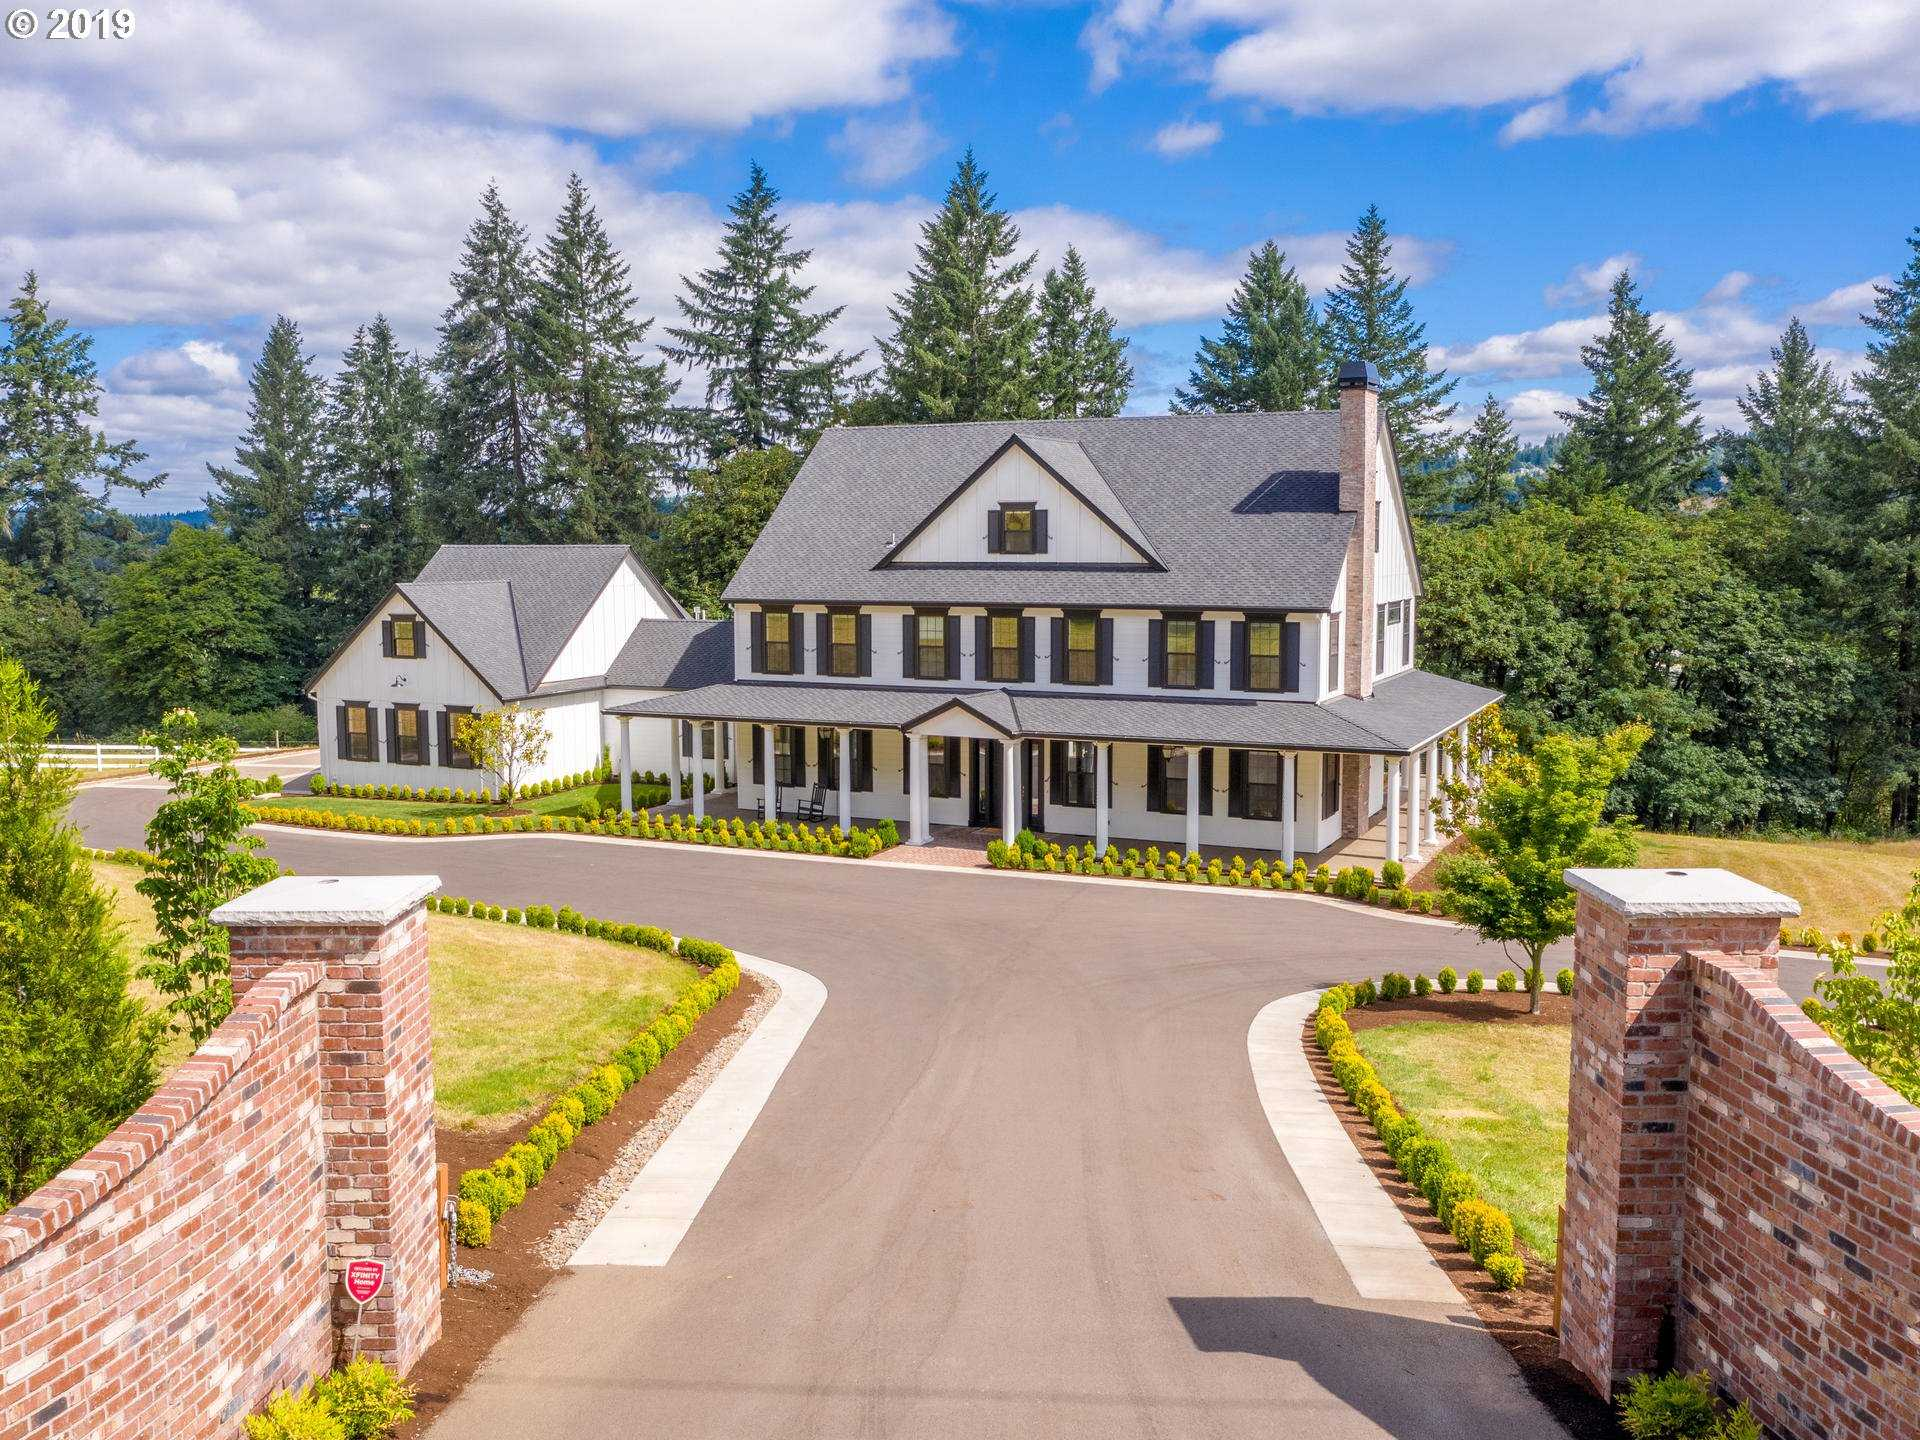 $1,950,000 - 4Br/6Ba -  for Sale in West Linn